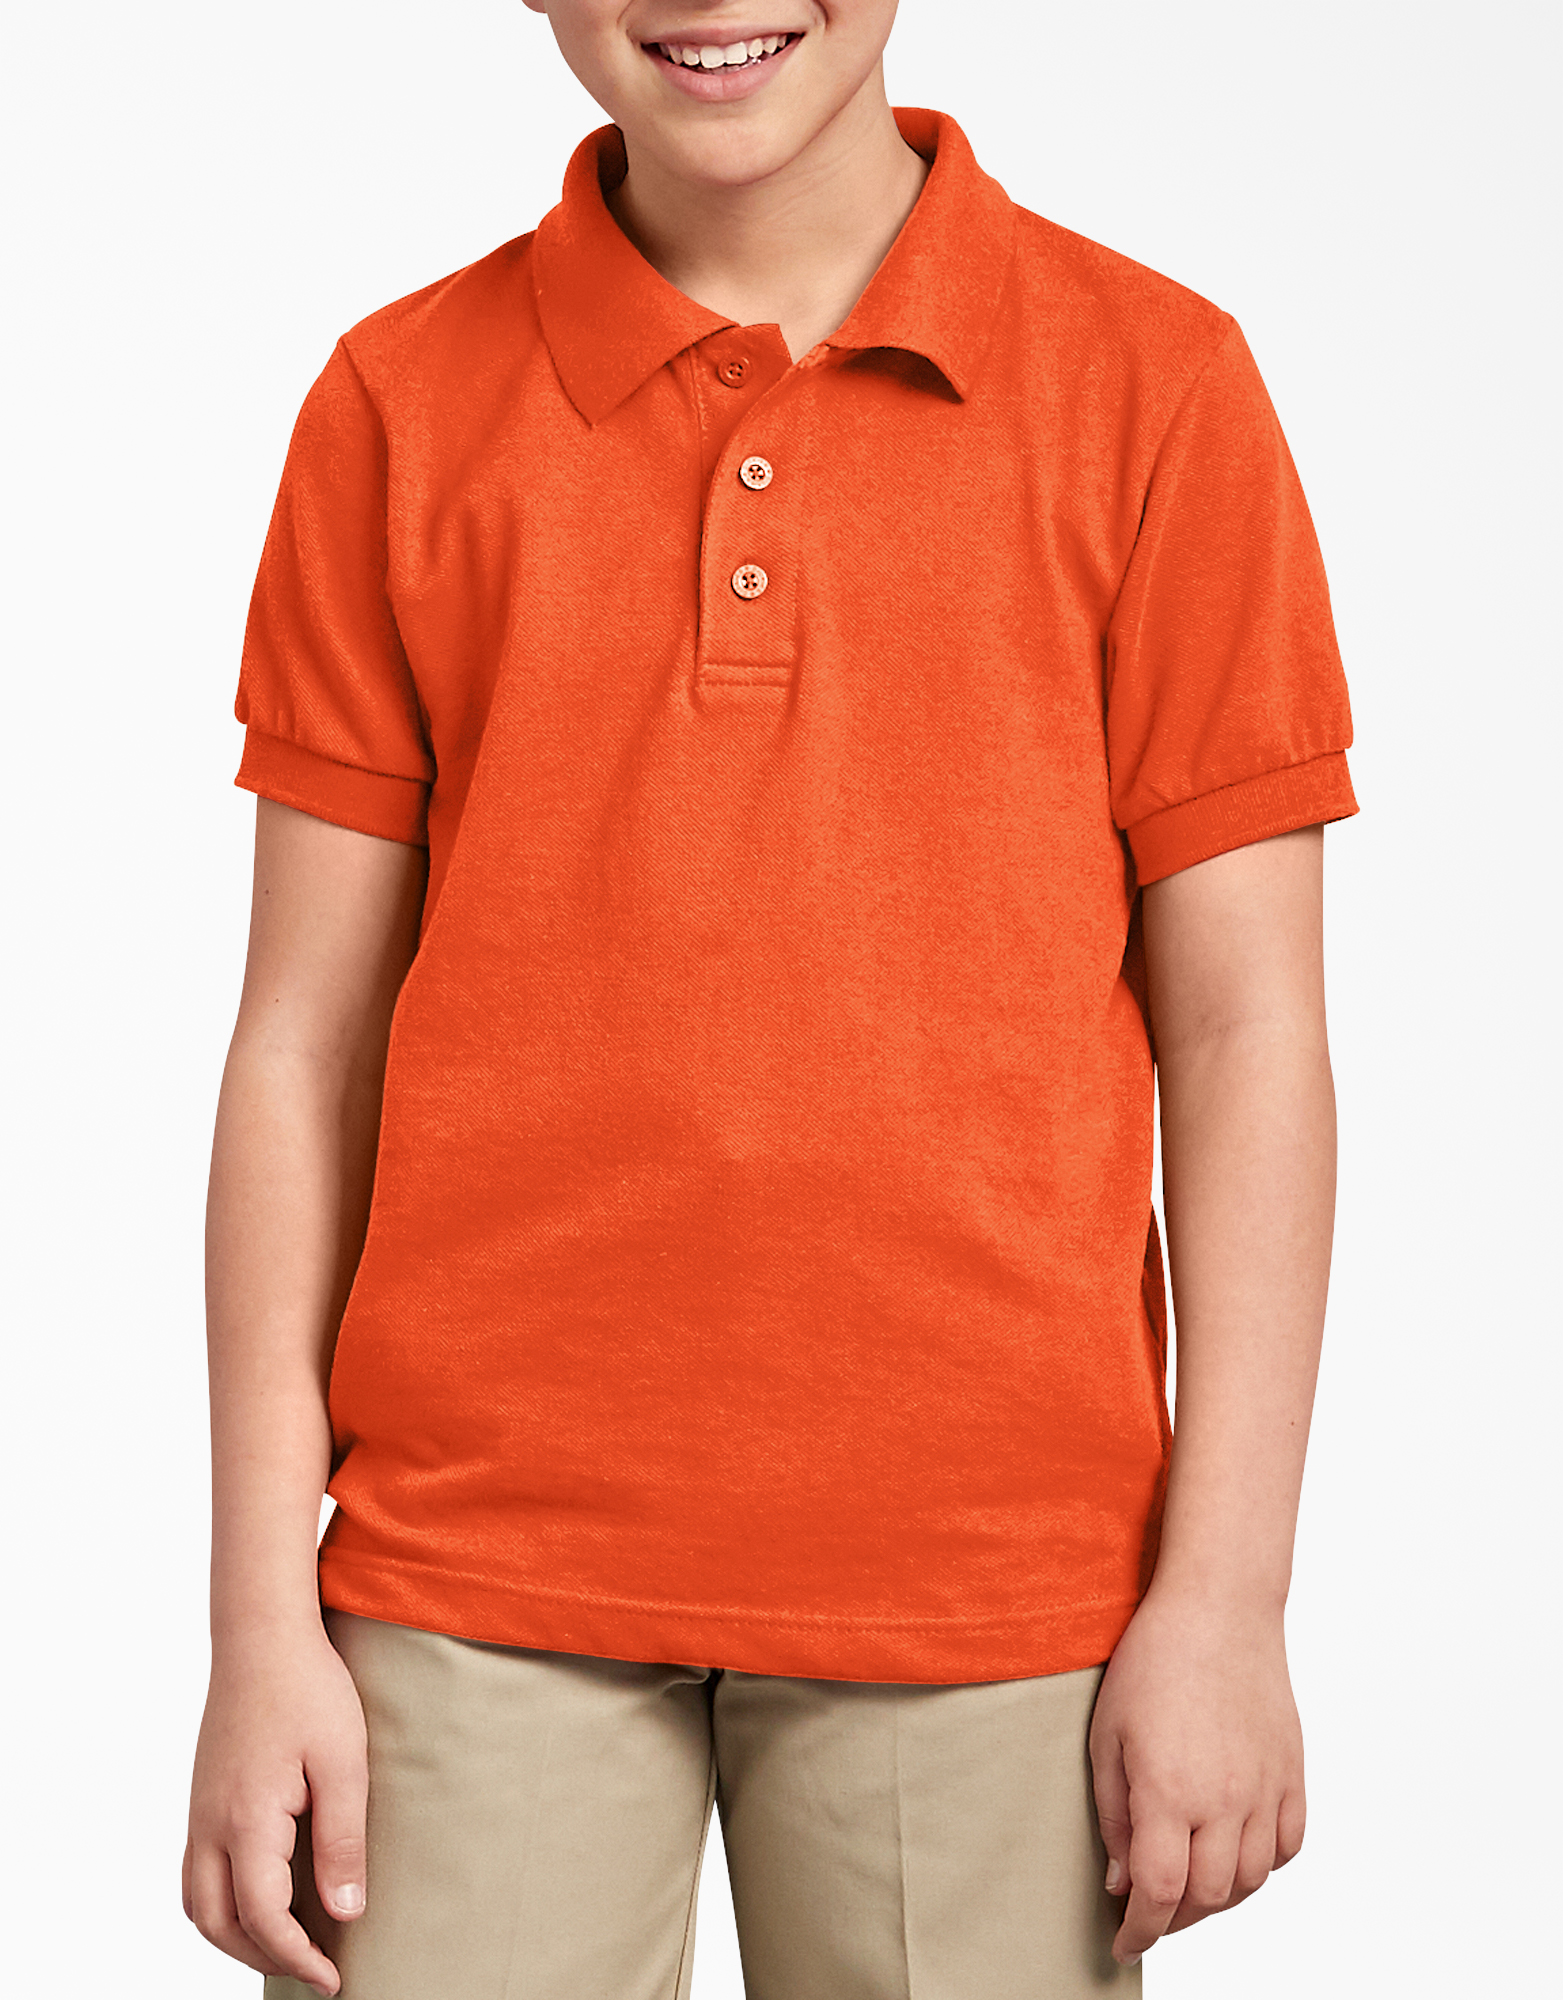 Kids' Short Sleeve Pique Polo Shirt, 8-20 - Orange (OR)